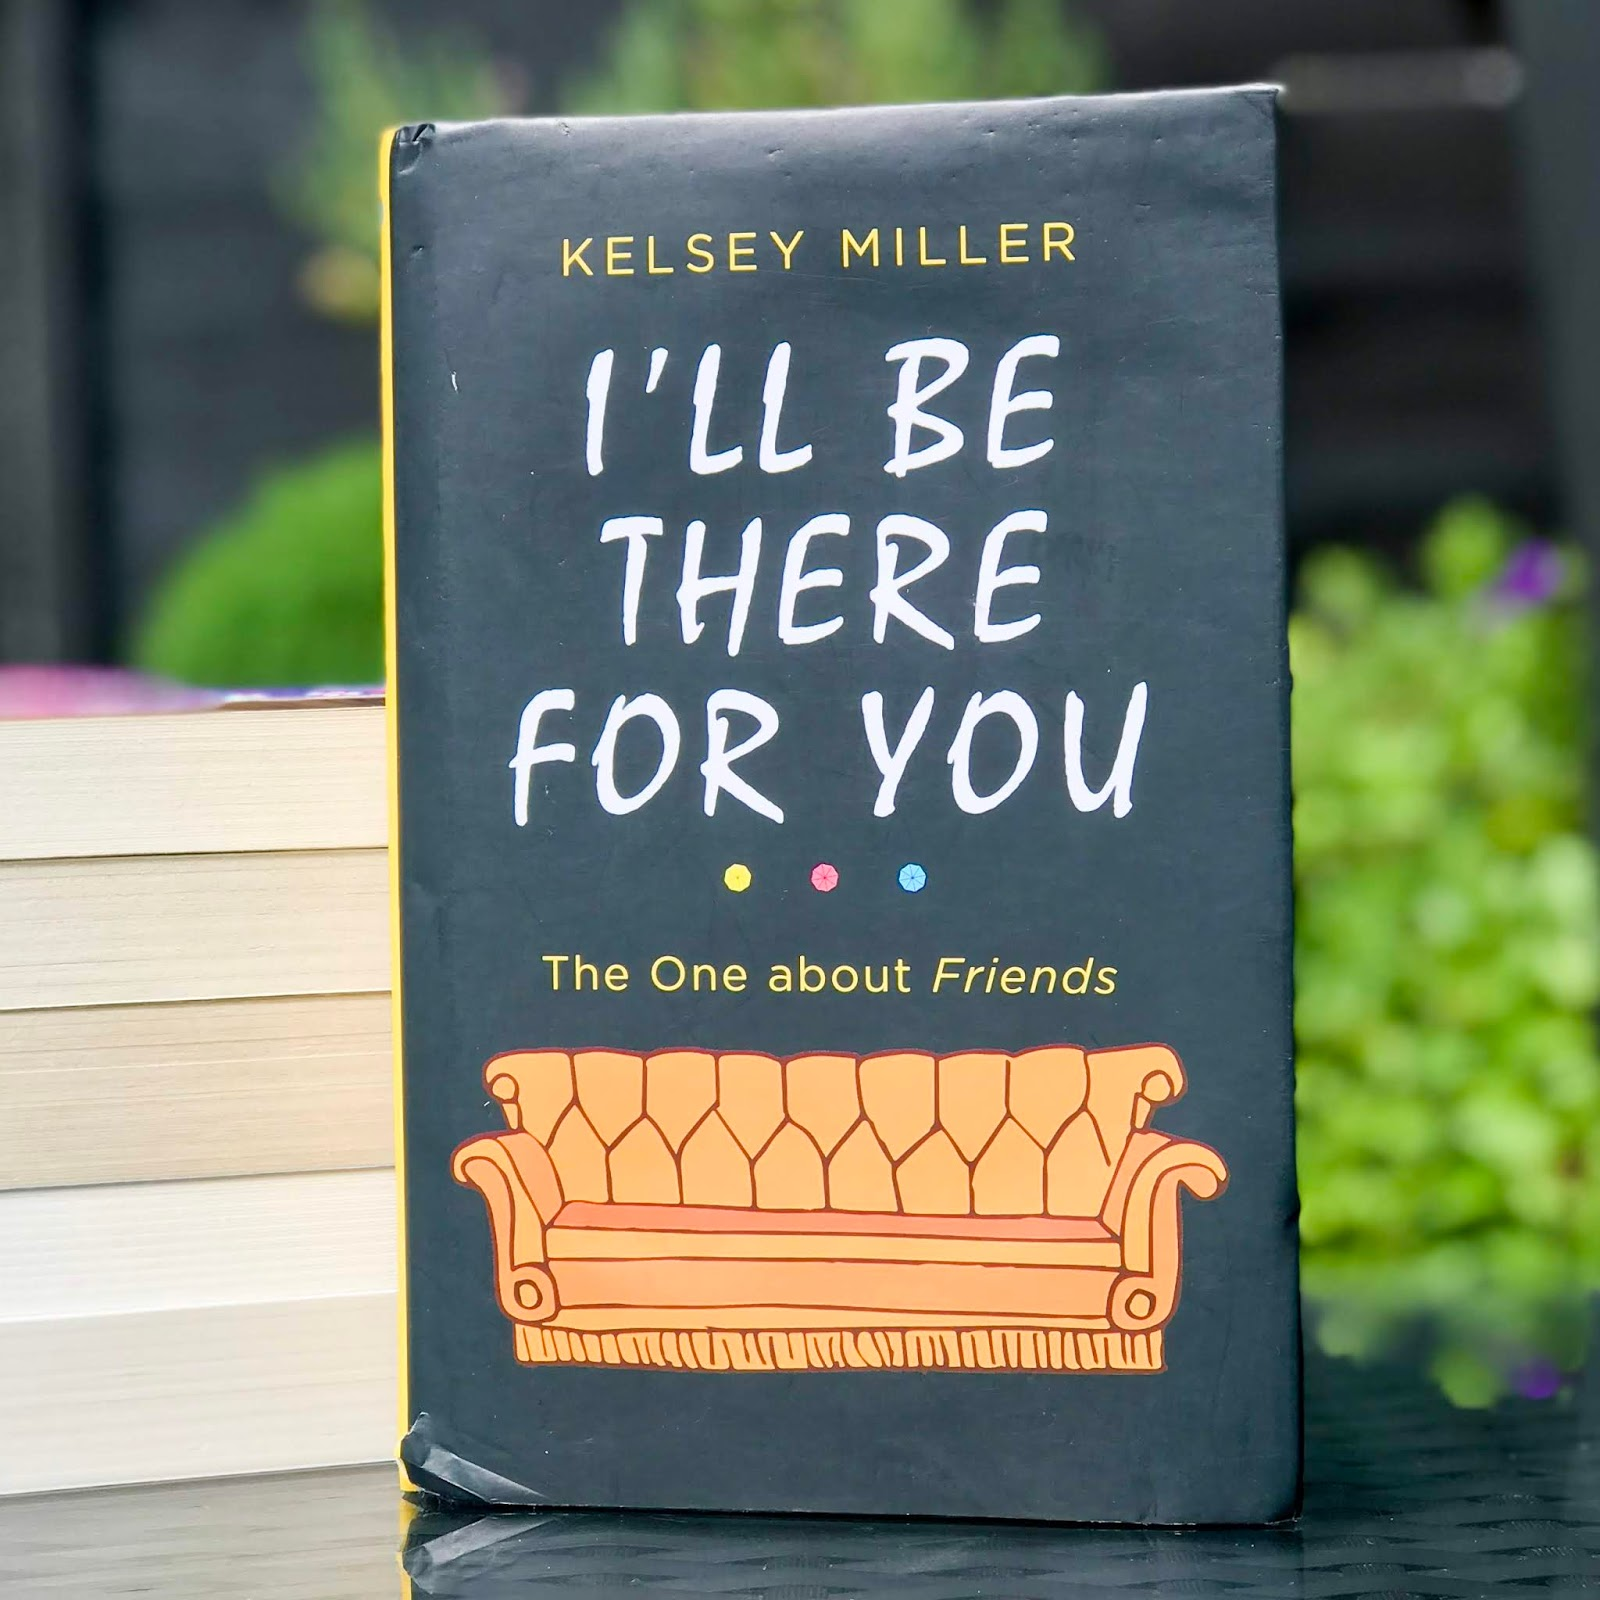 I'll Be There For You - Kelsey Miller Book Review